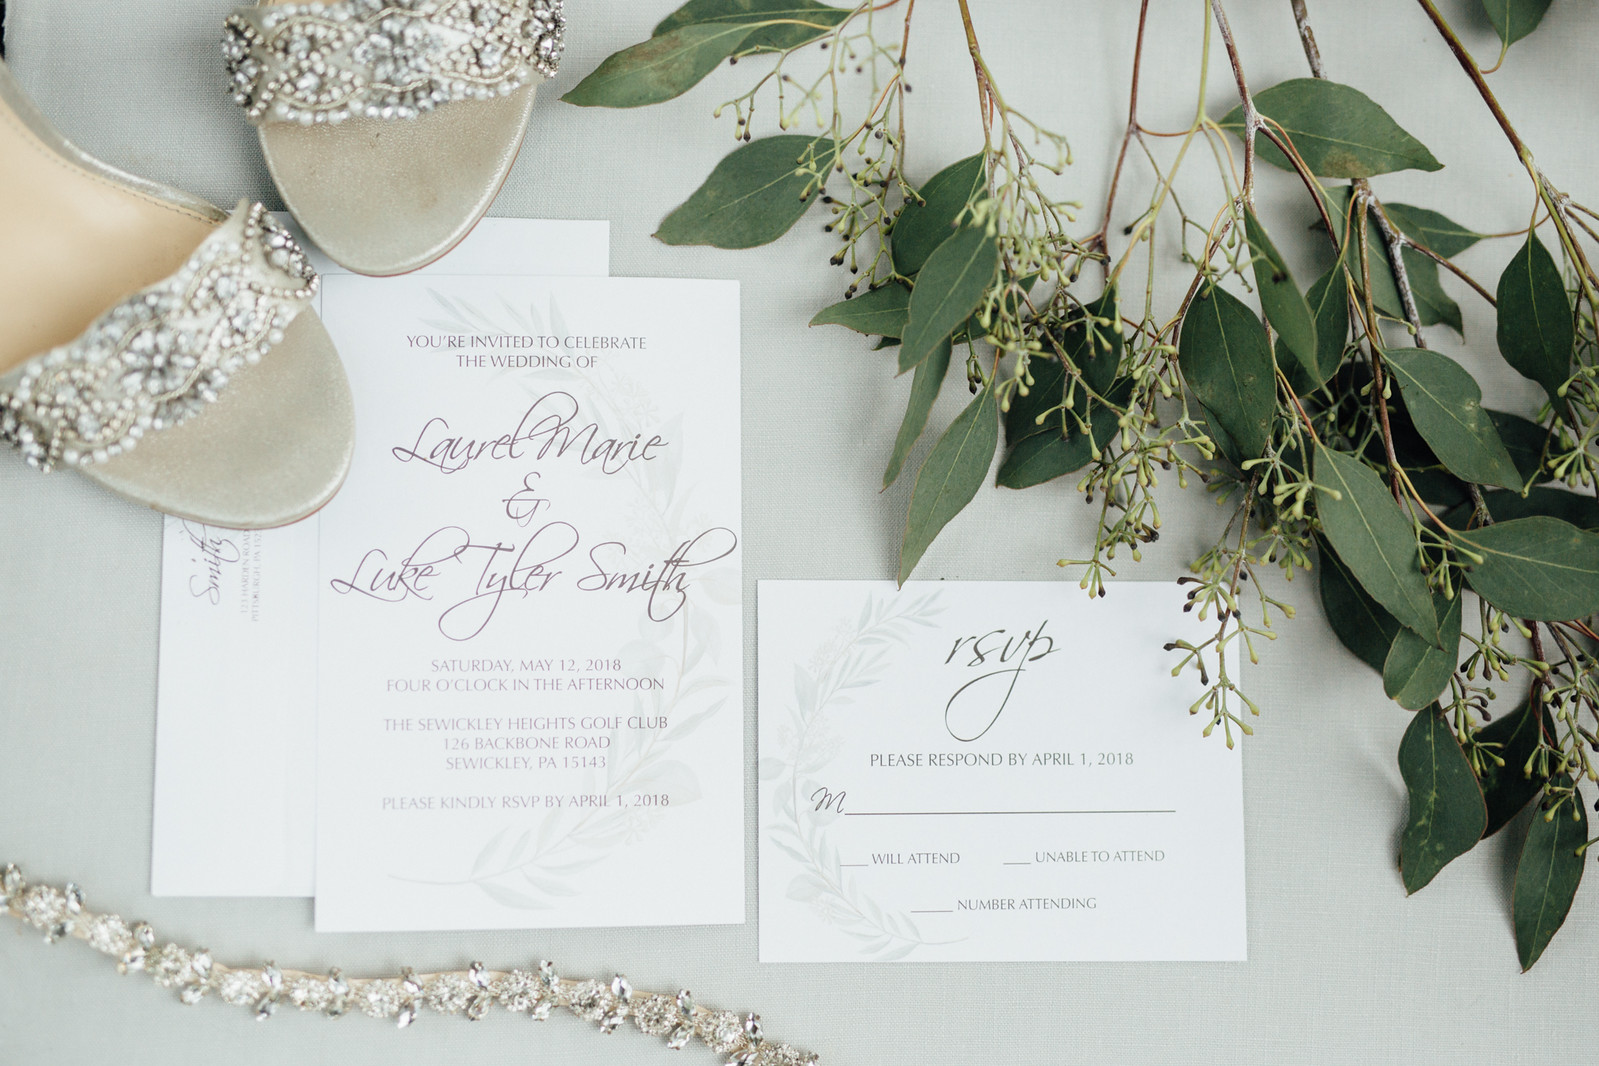 Wedding invite and RSVP card